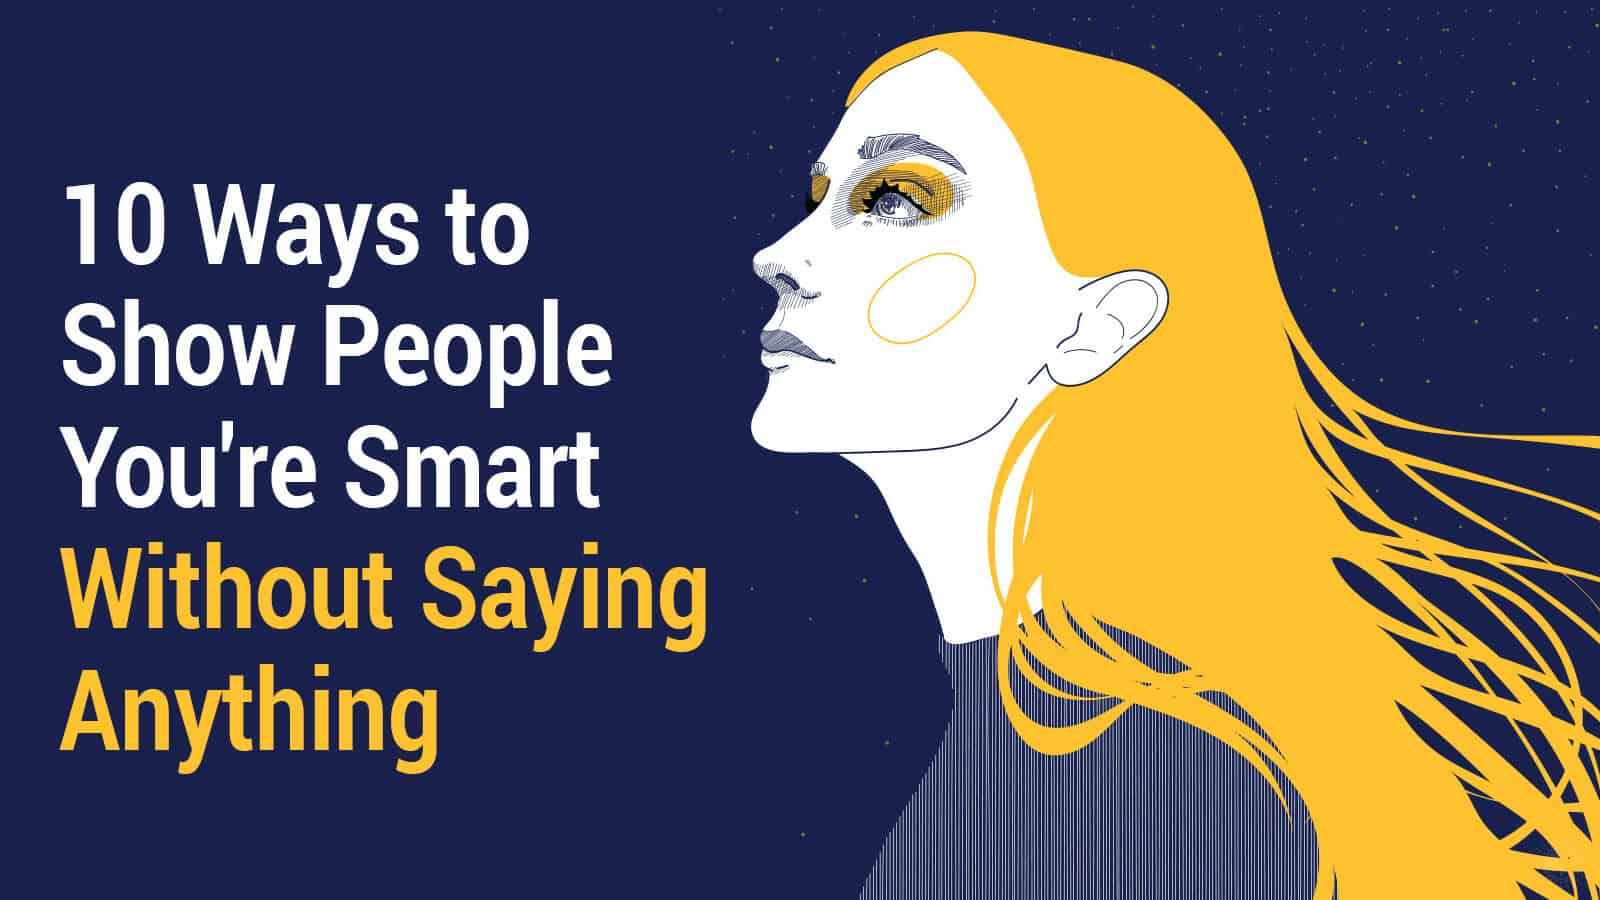 show people you're smart